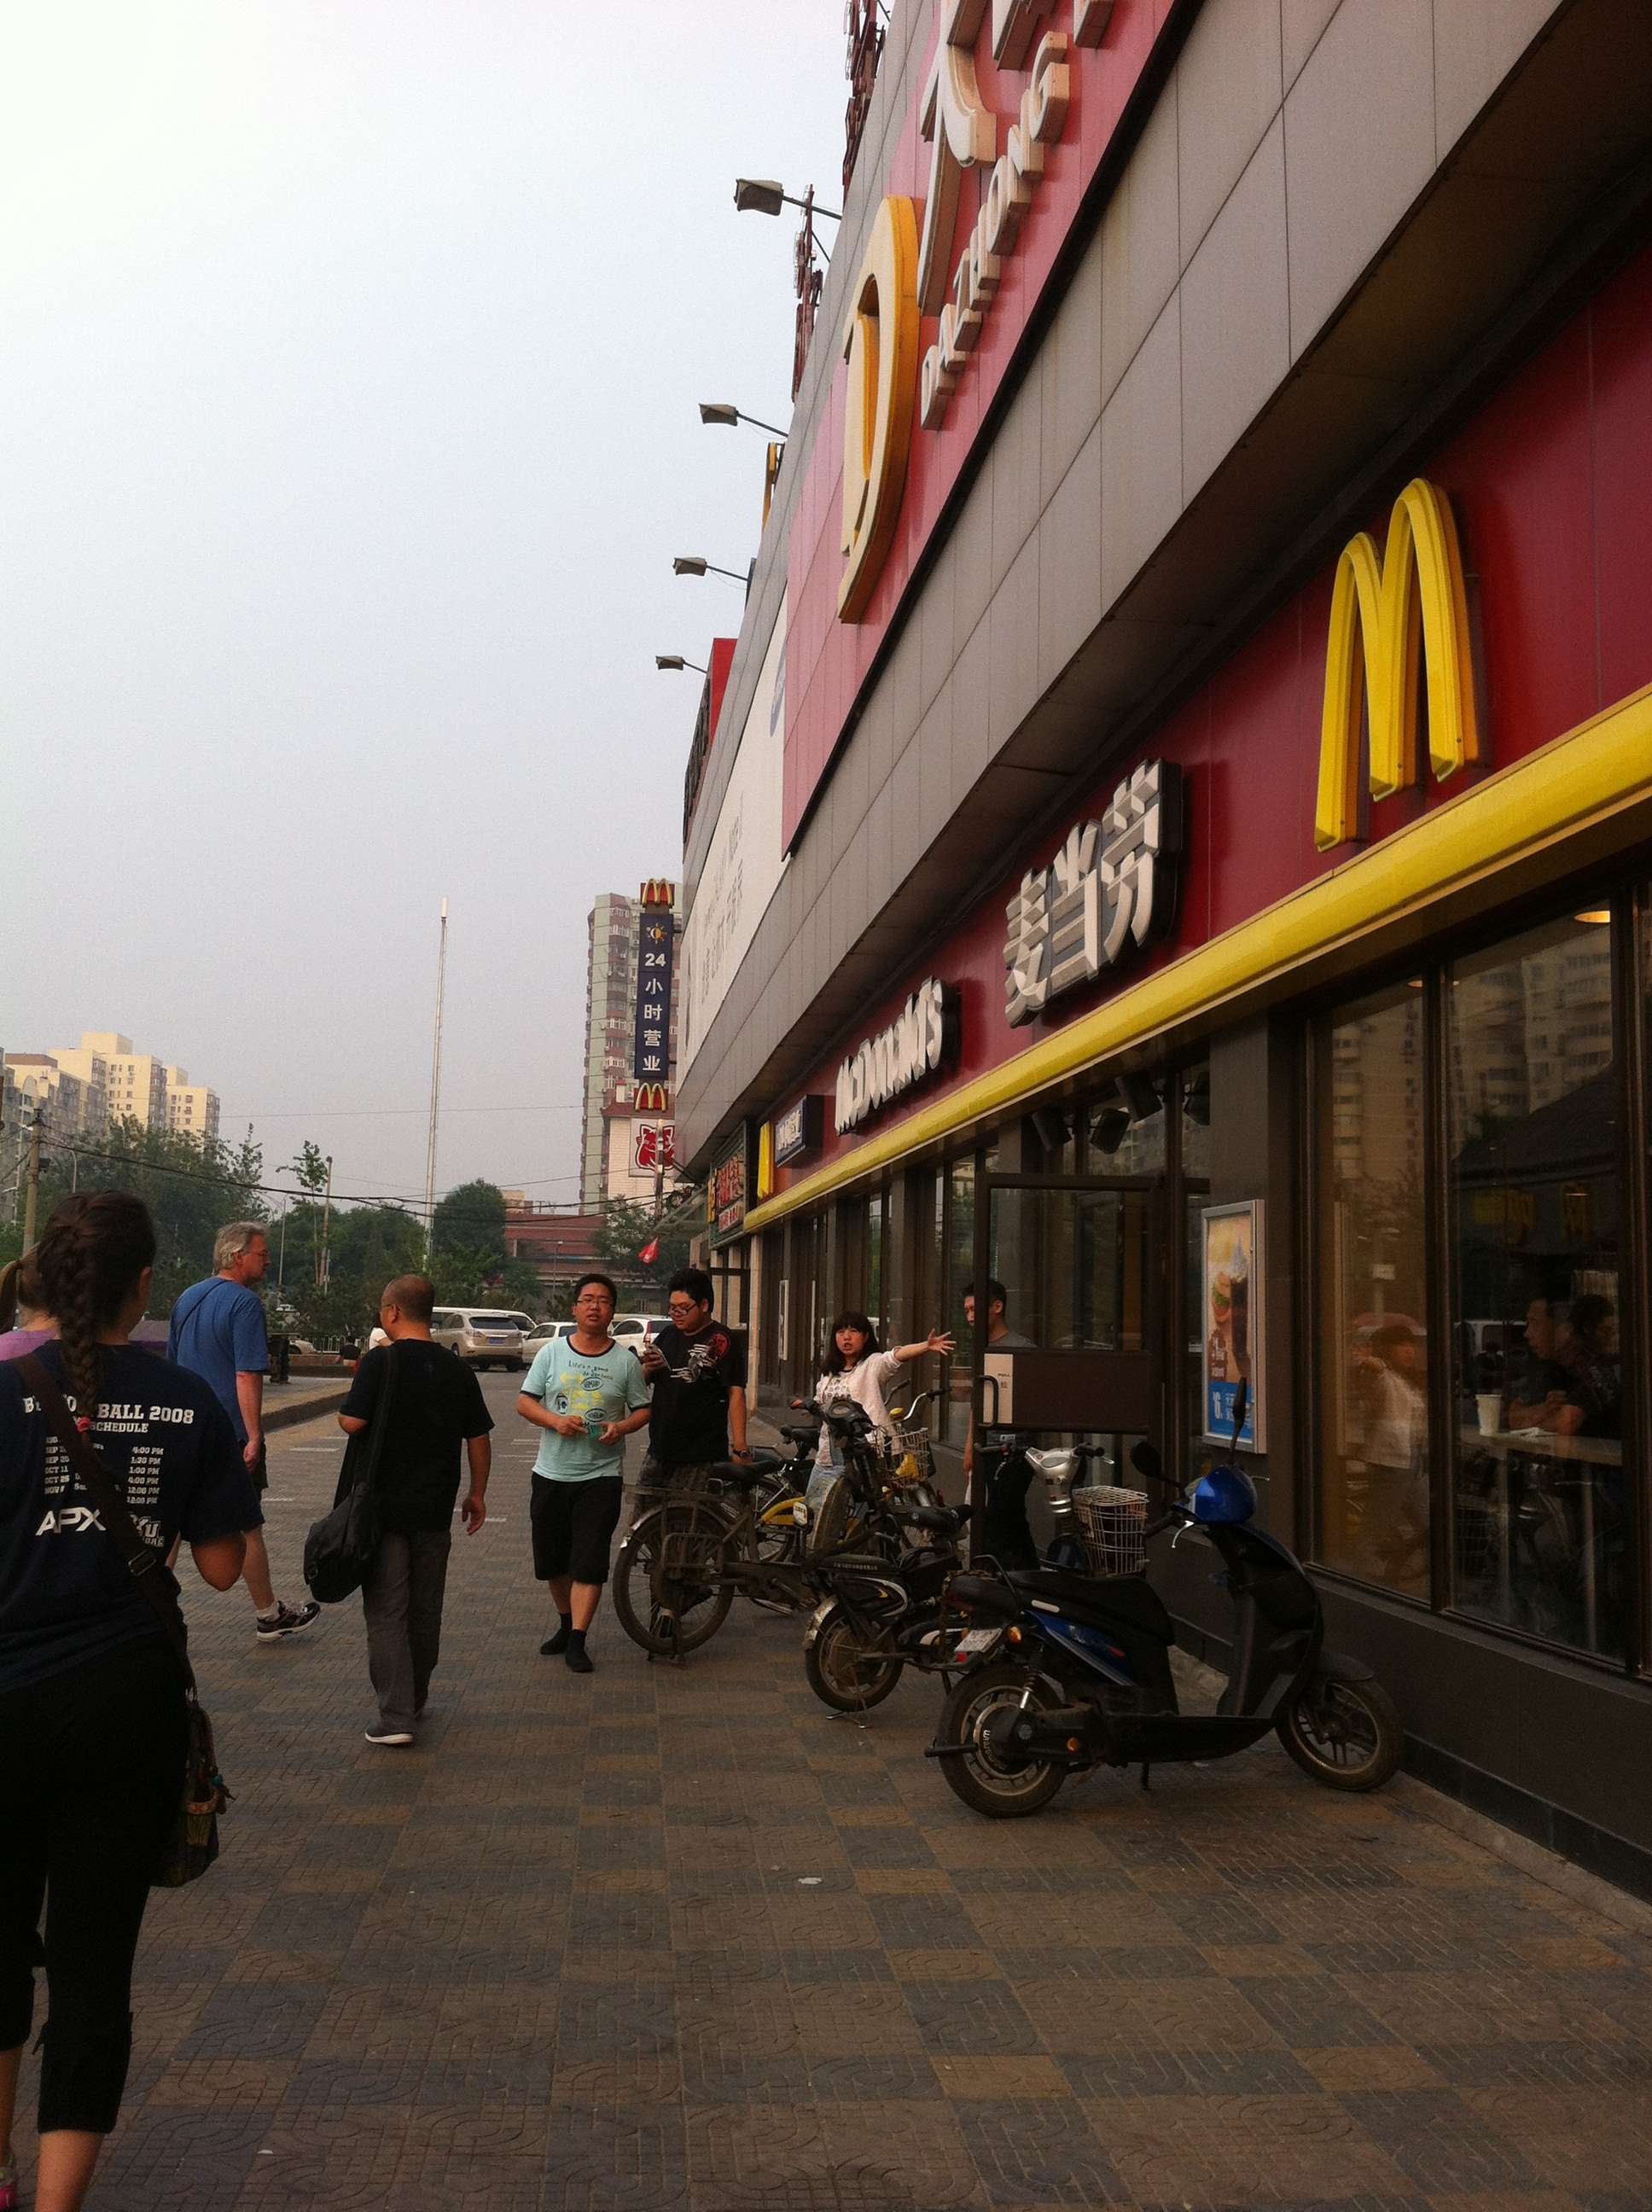 McDonalds in China